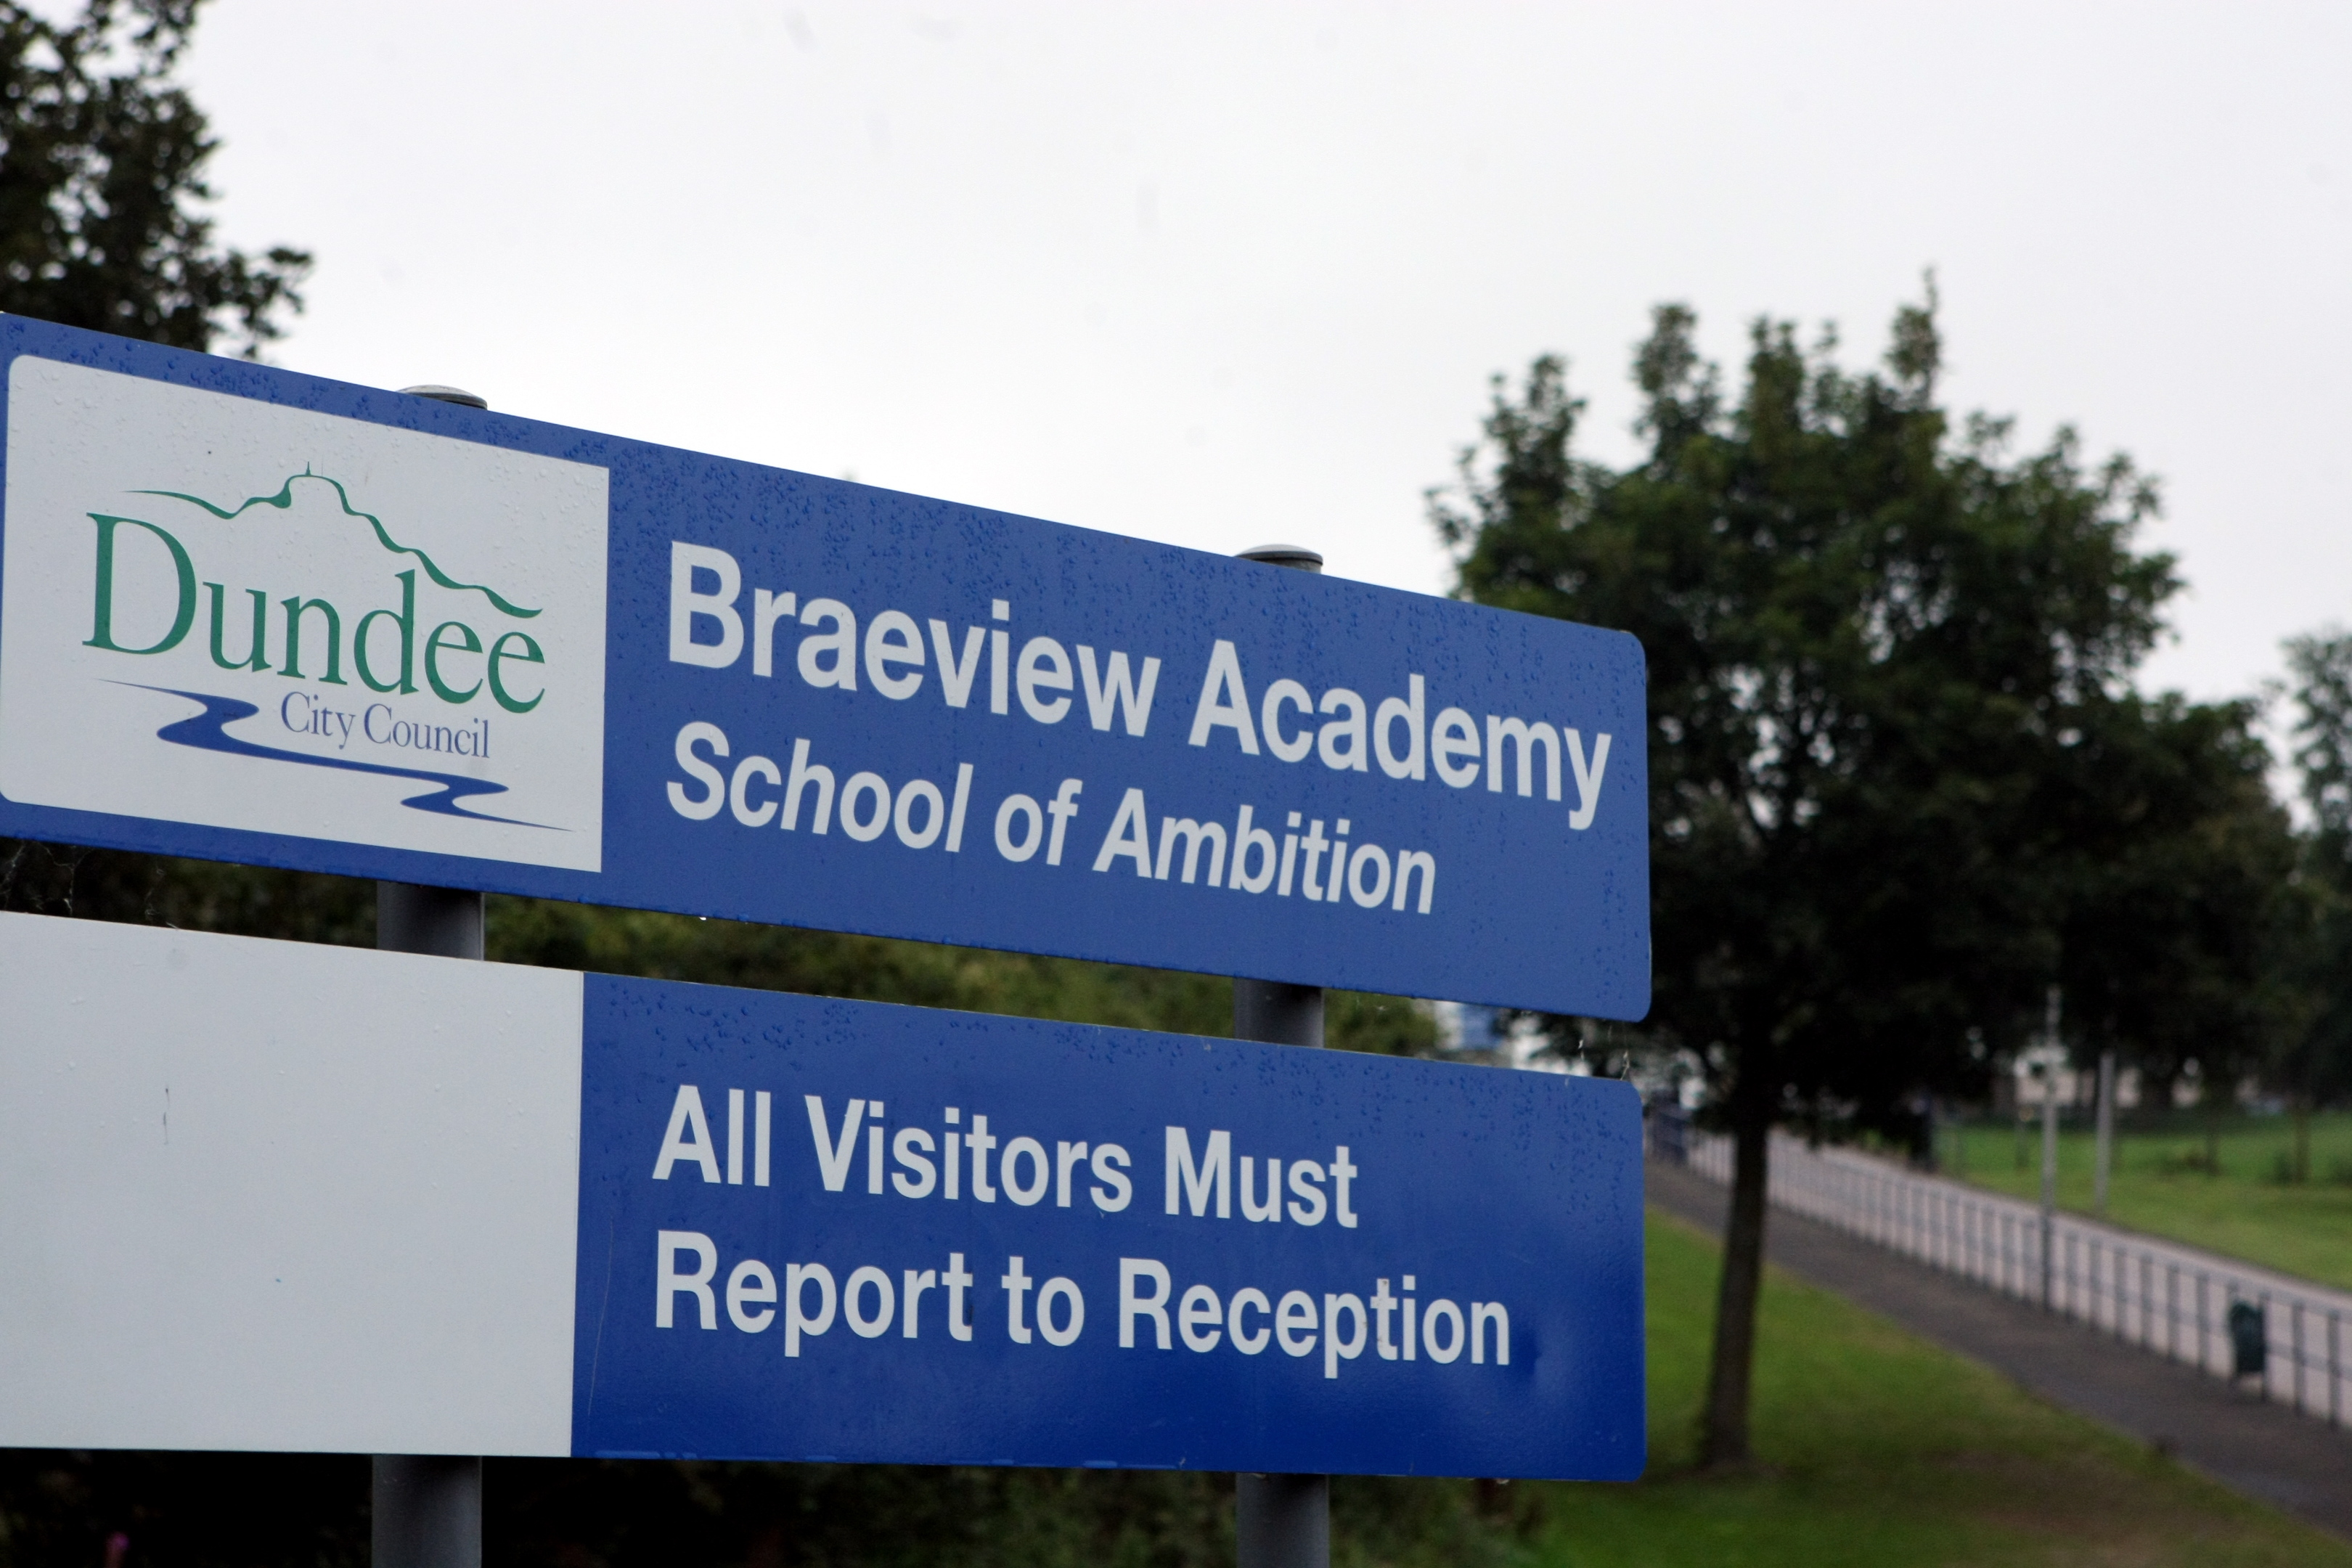 Braeview Academy has been forced to close.